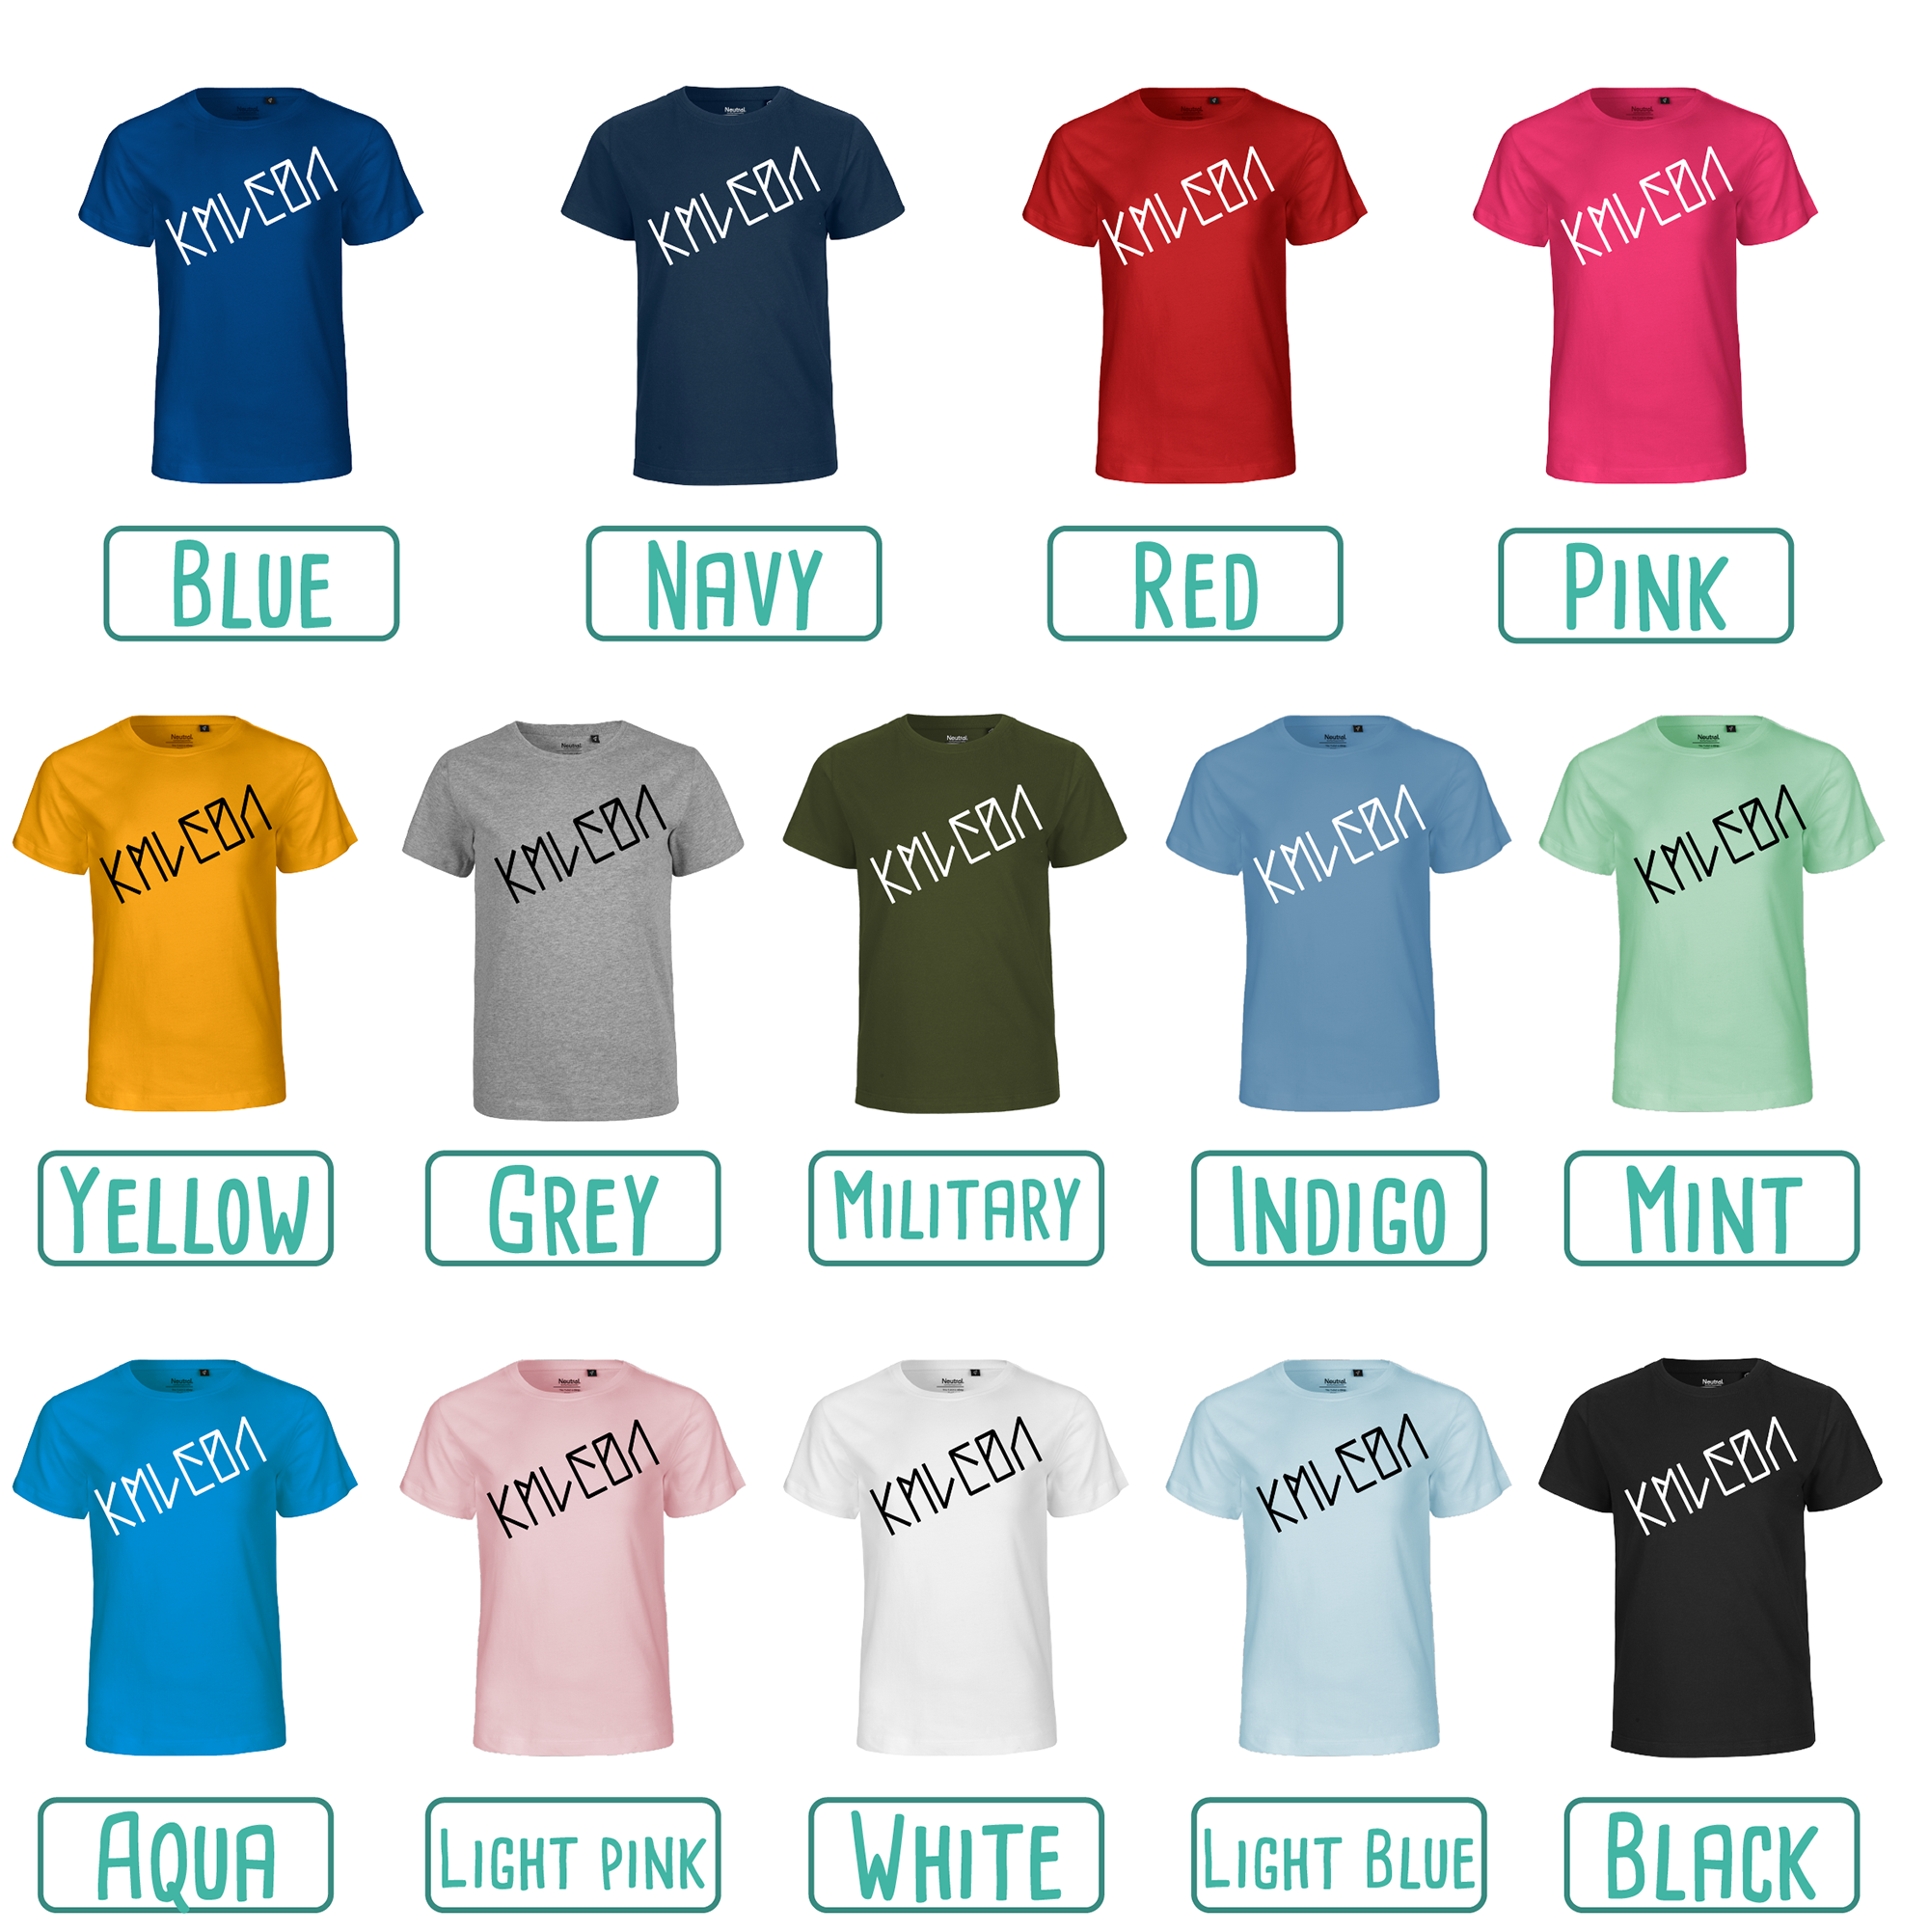 'Book nerd' kids shortsleeve shirt